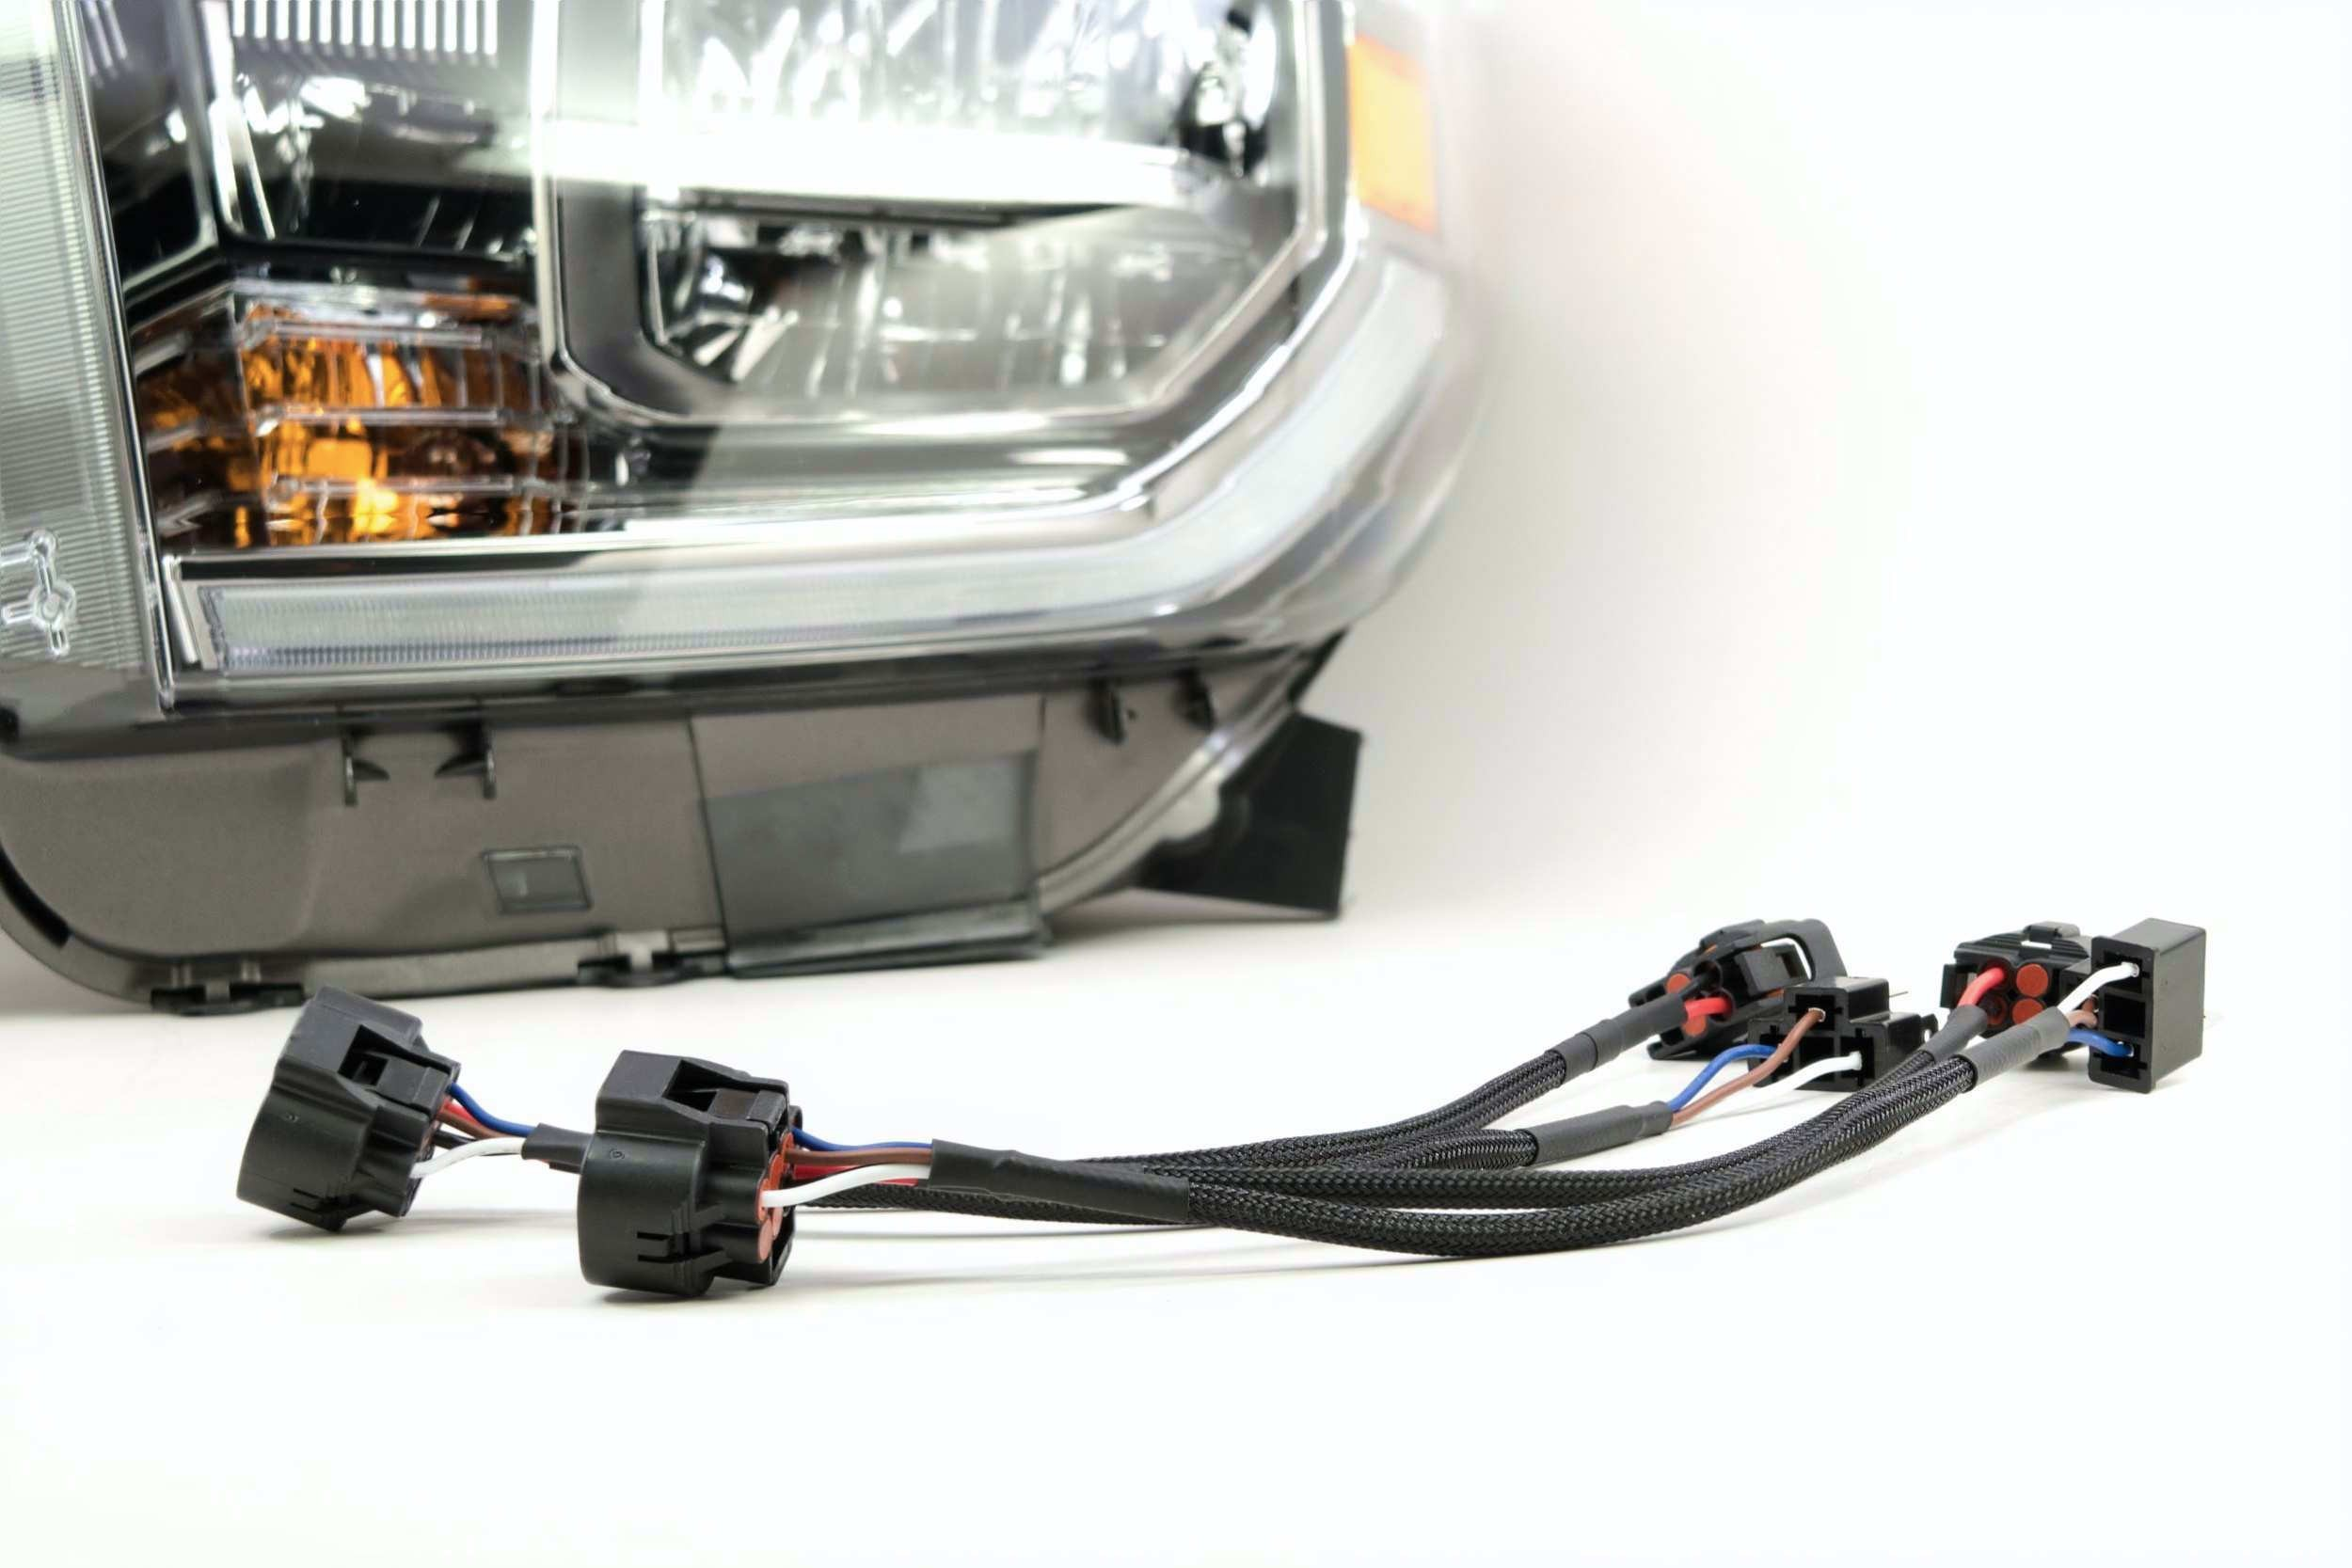 tundra wiring harness wiring diagramtoyota tundra oem led conversion harness (2014 2019) hid kit pros tundra wiring